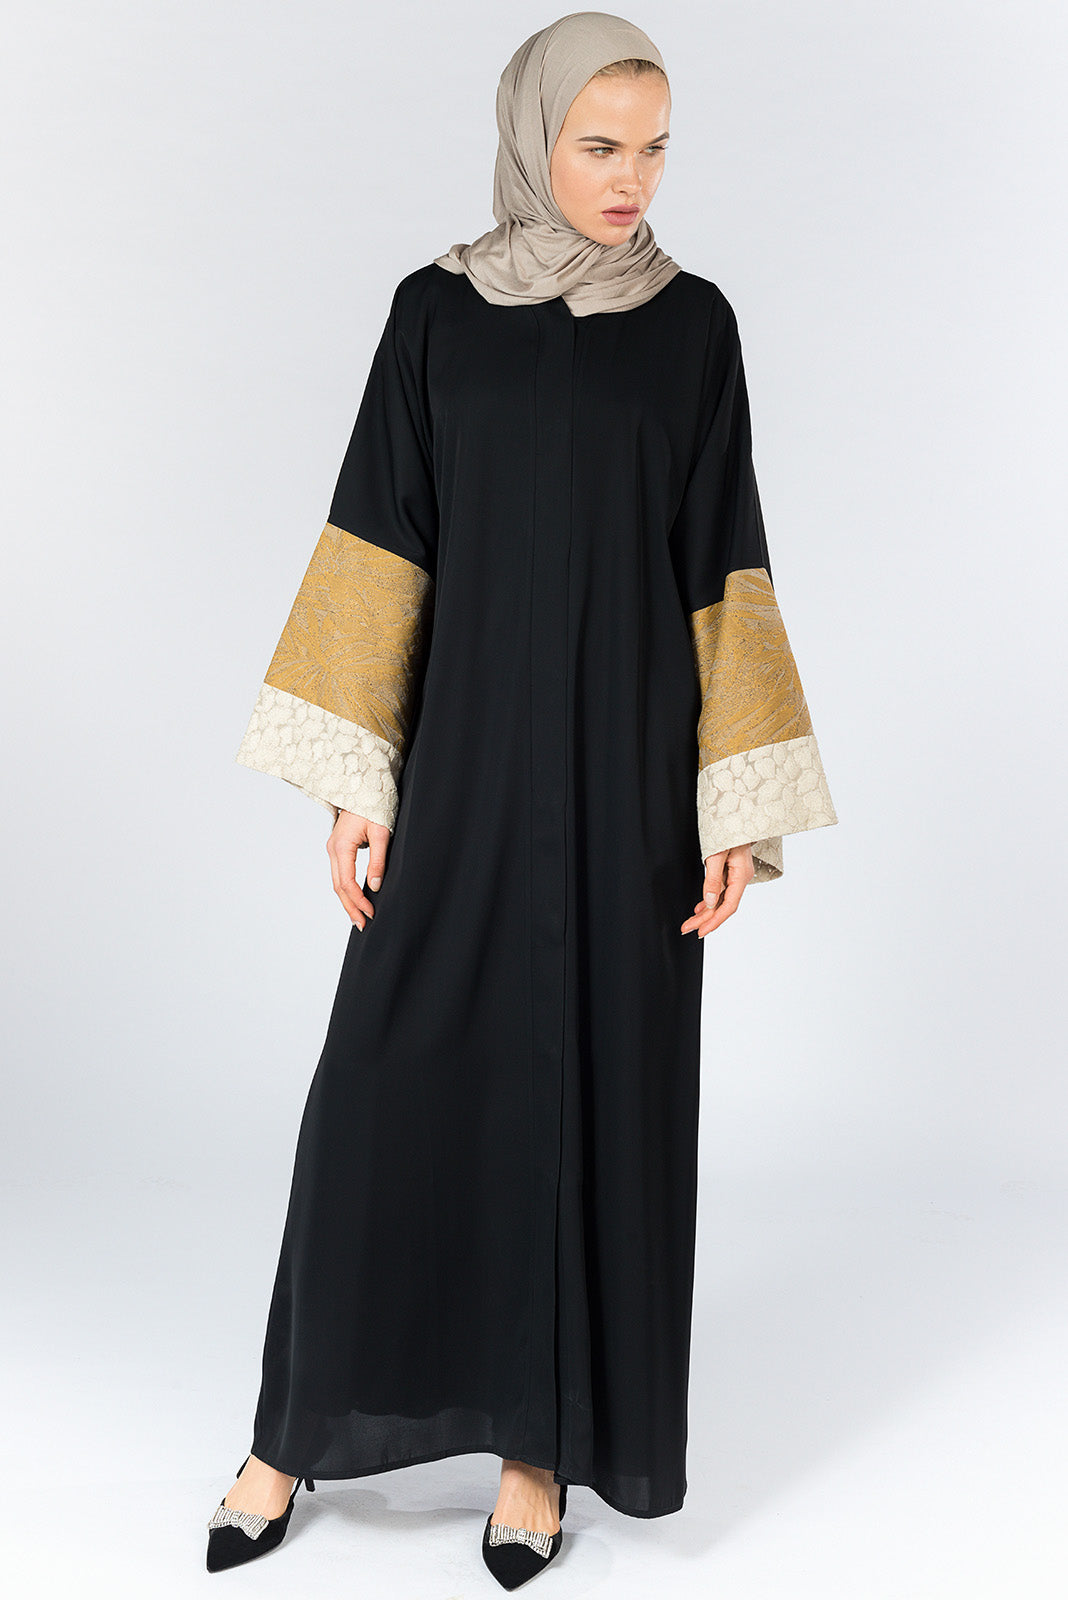 Black Closed Abaya with Beige and White Textured Sleeves in Silk